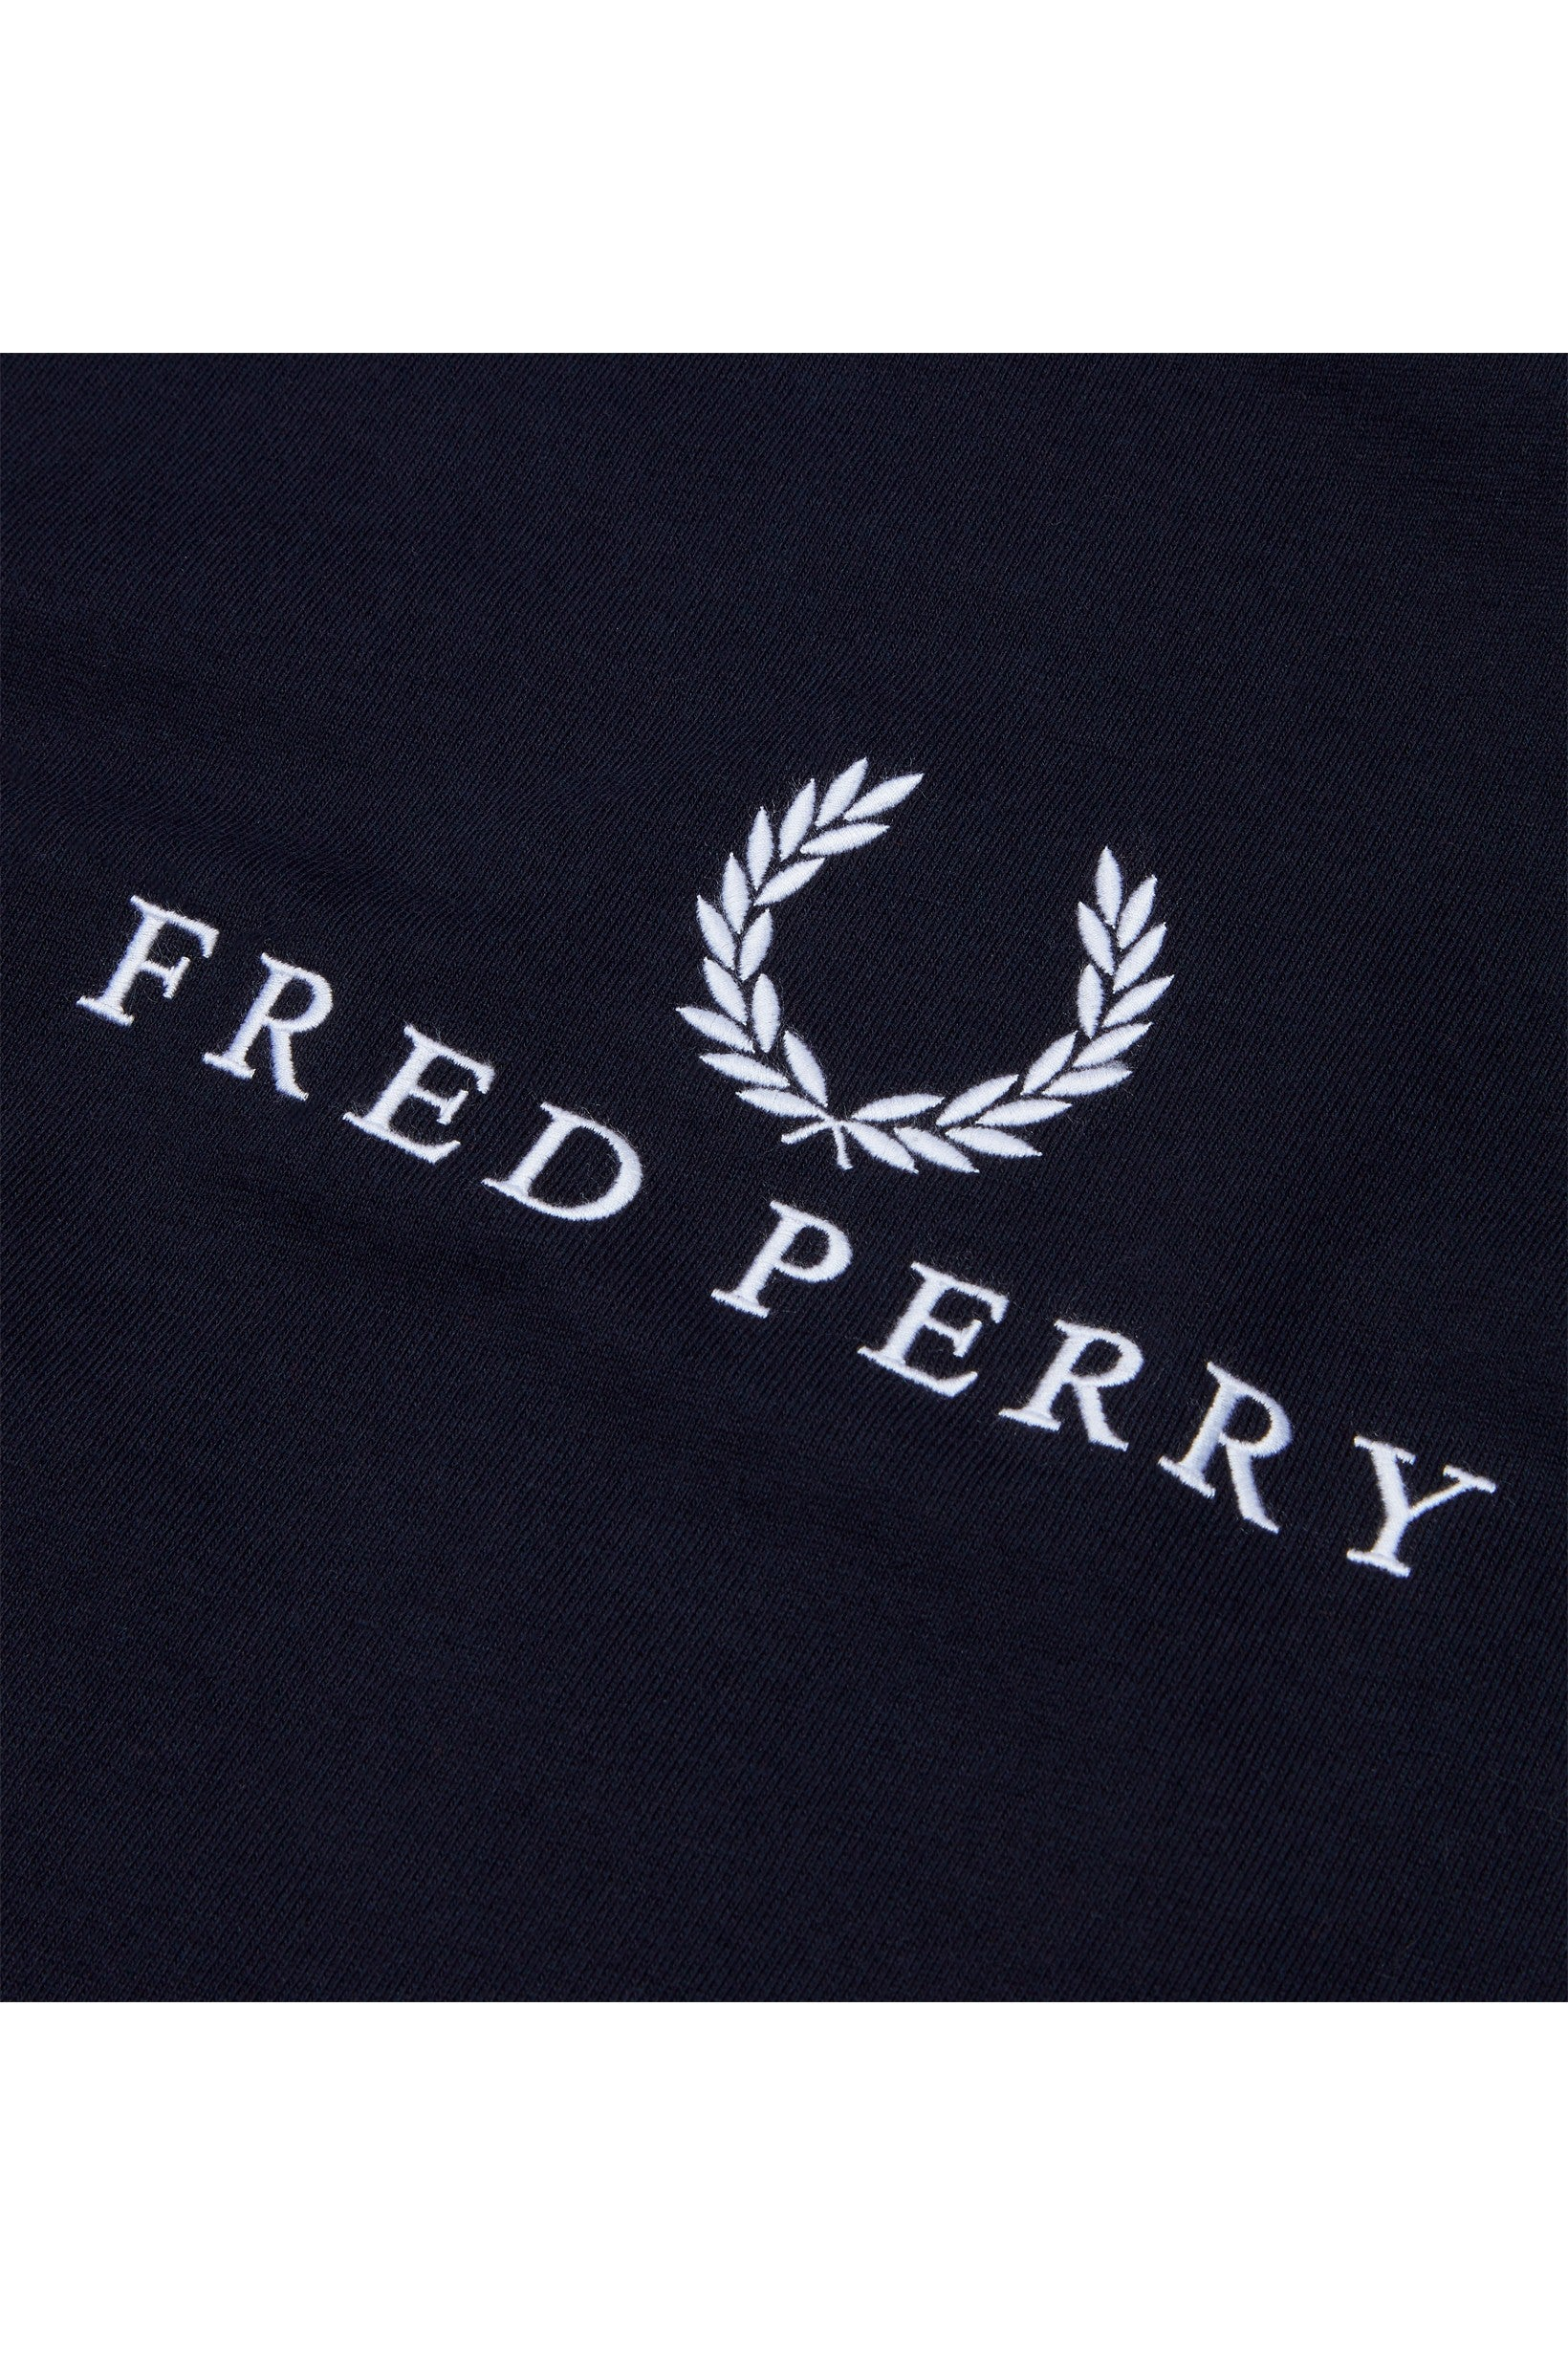 Fred Perry Sports Authentic Embroidered Sweatshirt Navy